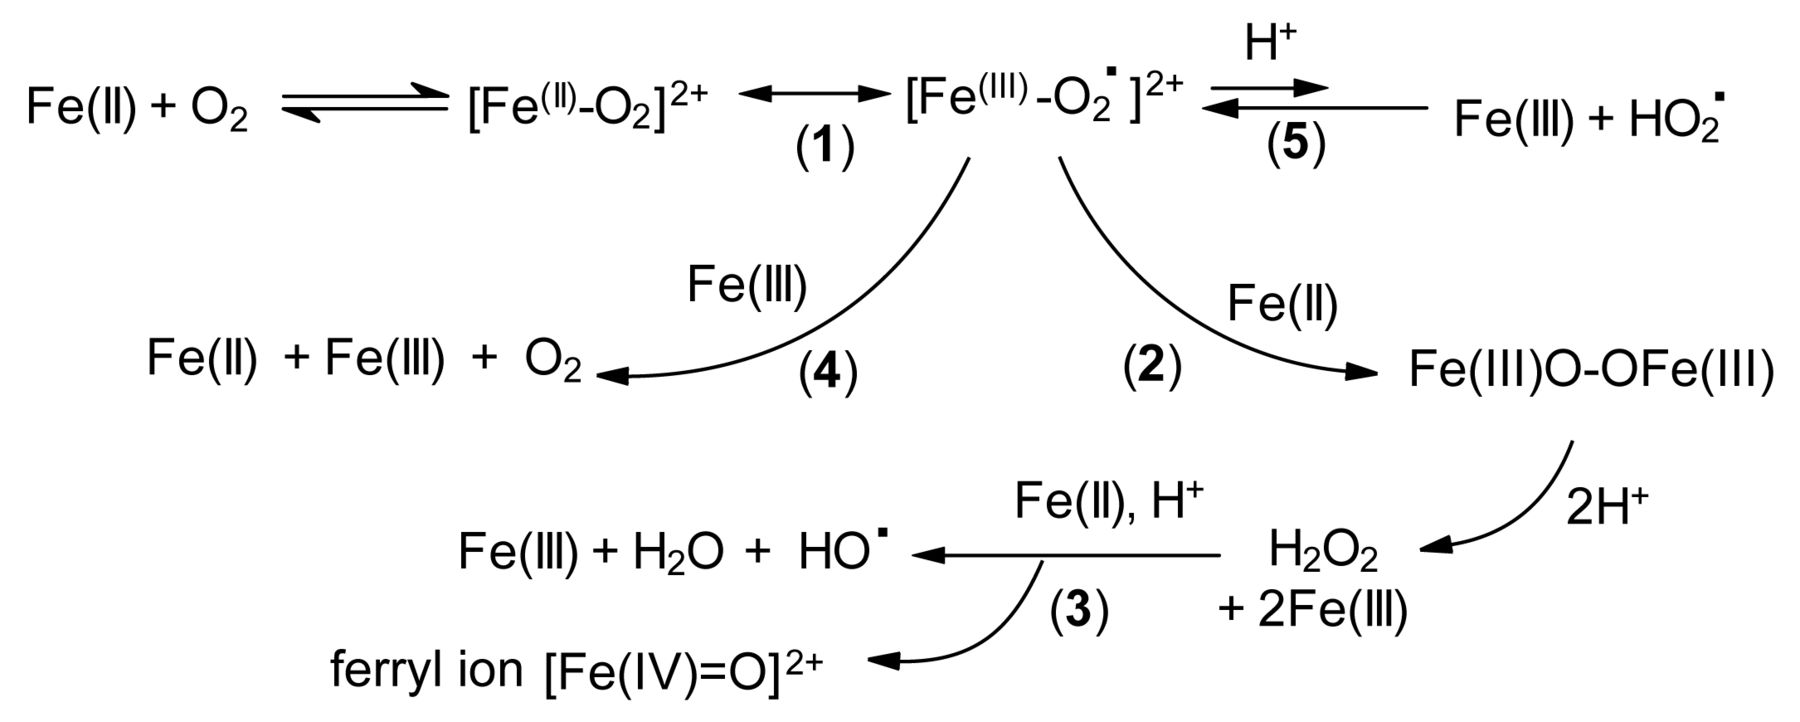 Reactions Involving Iron In Mediating Catechol Oxidation In Model